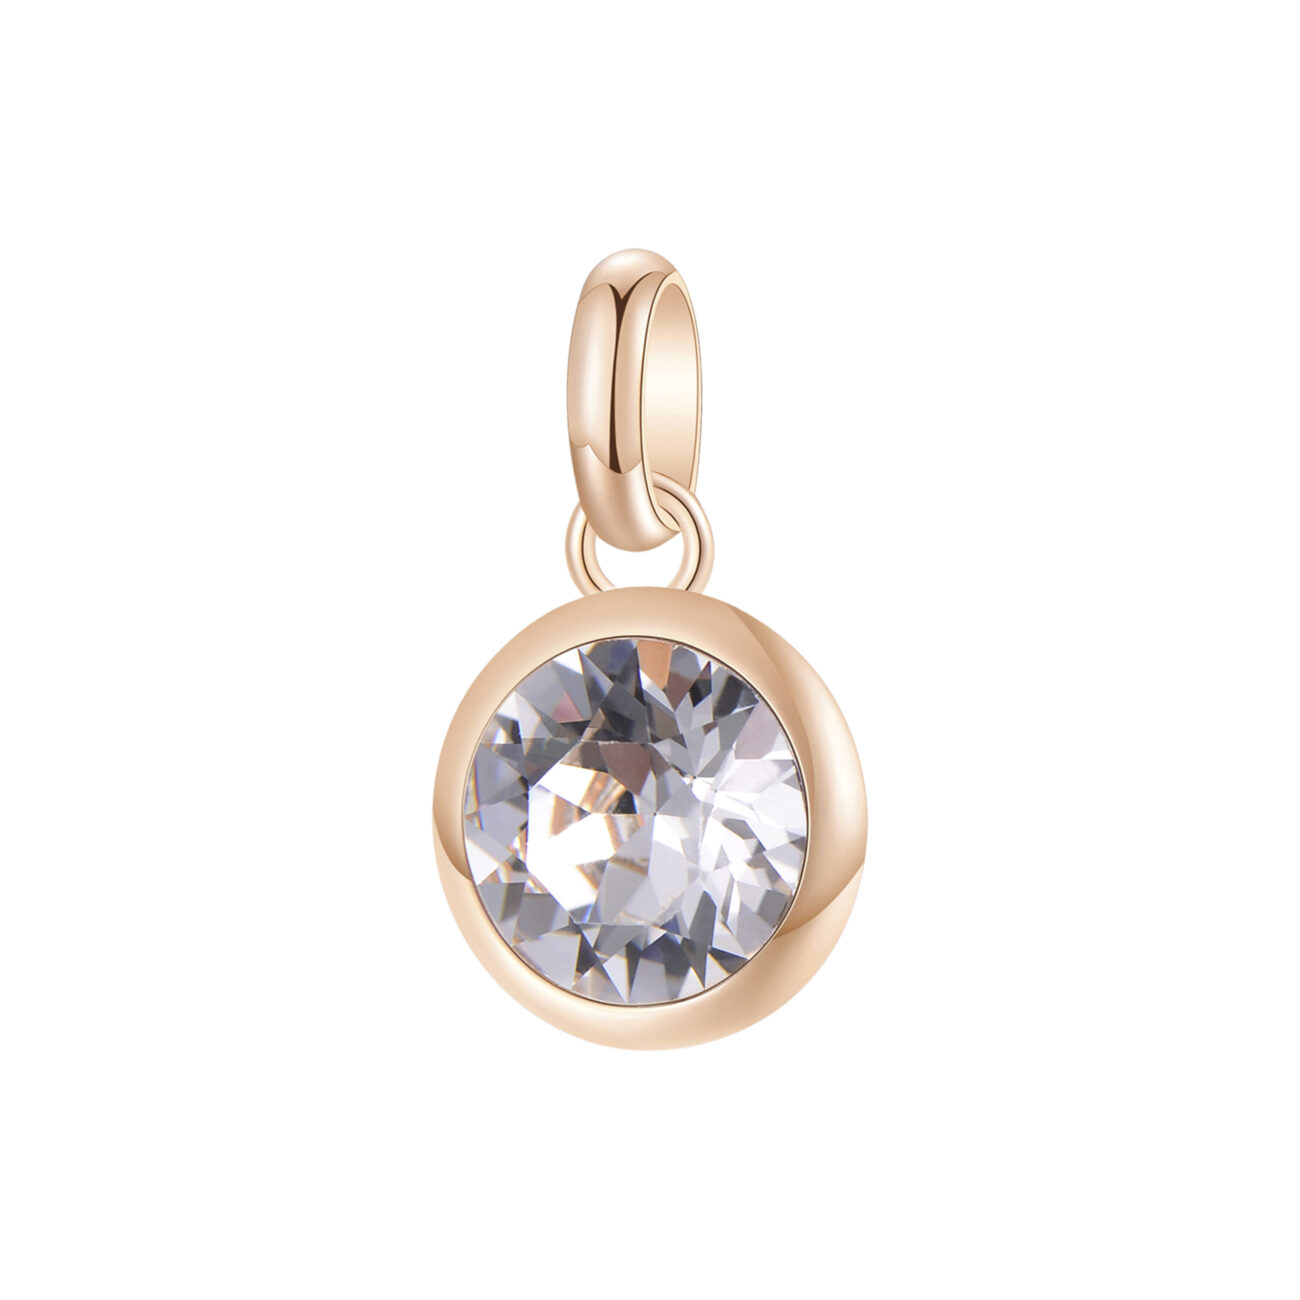 316L stainless steel beads, rose gold pvd and white Swarovski©crystal